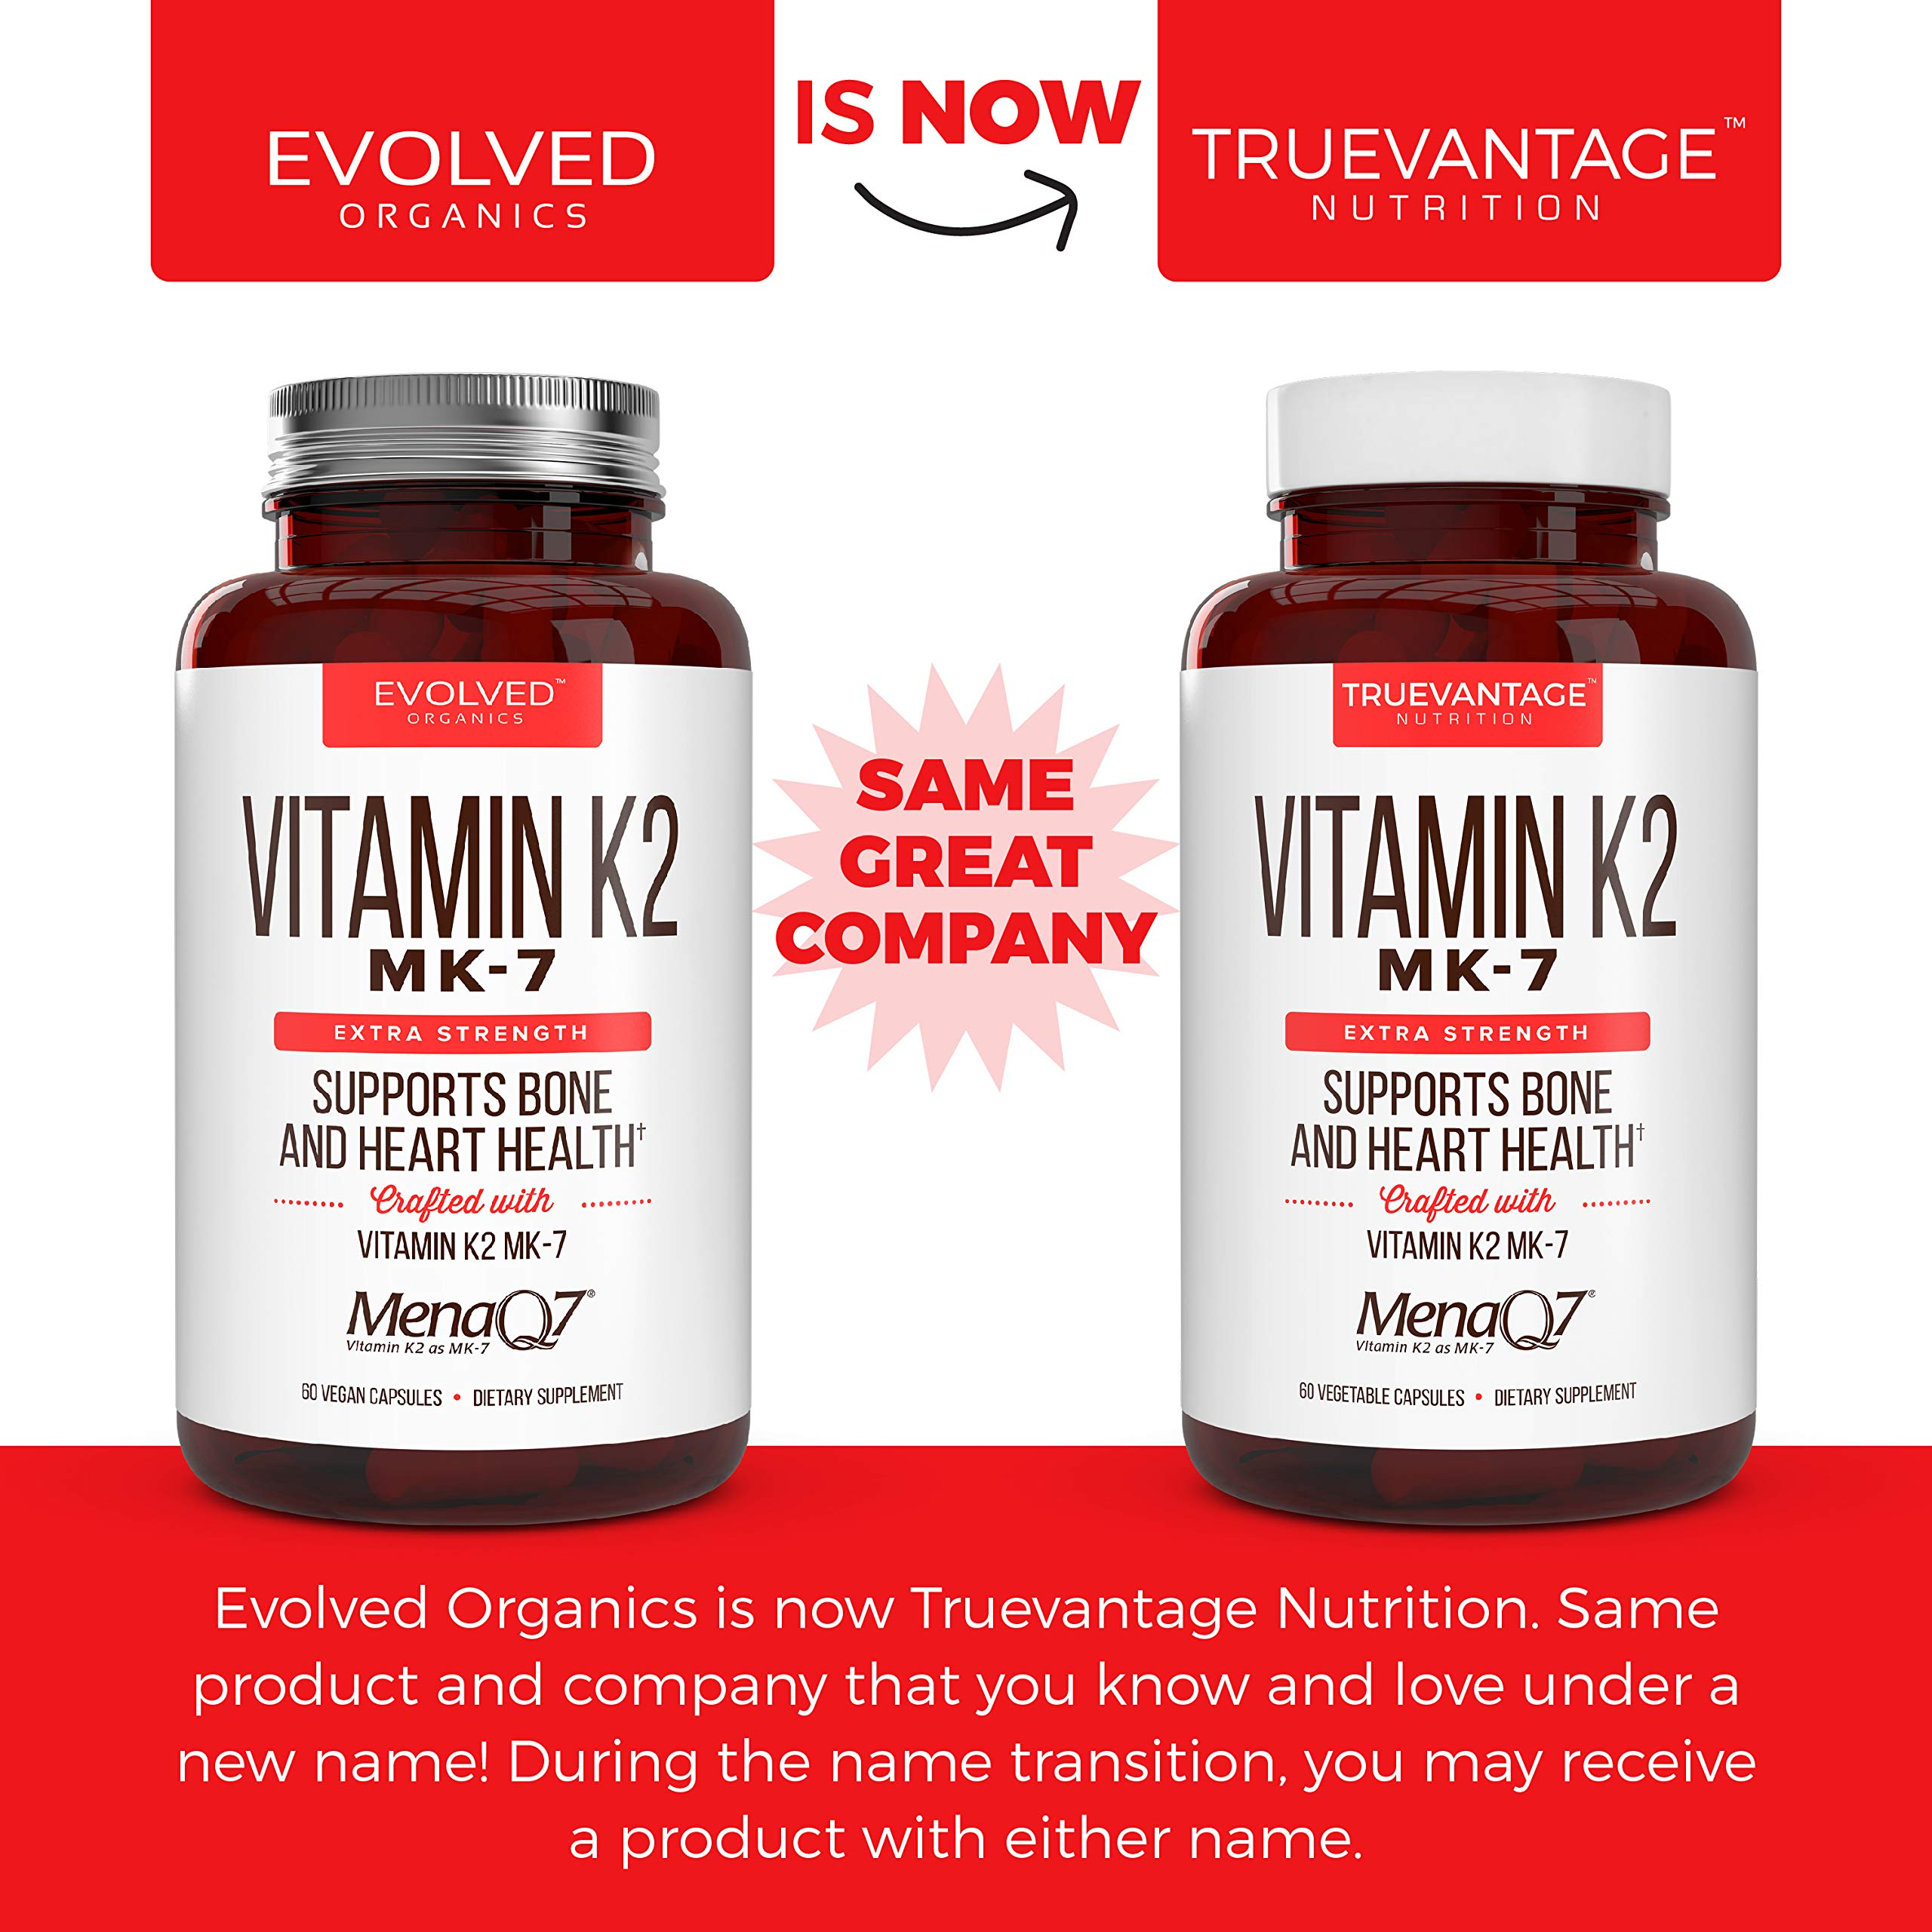 Extra Strength Vitamin K2 Supplement 180mcg - Vitamin k2 Supplement Supports Bone & Heart Health for Cardiovascular Calcium Absorption - 60 Easy to Swallow Vegan caps of Vitamin K2 MK7 (3 Pack) by Truevantage Nutrition (Image #2)